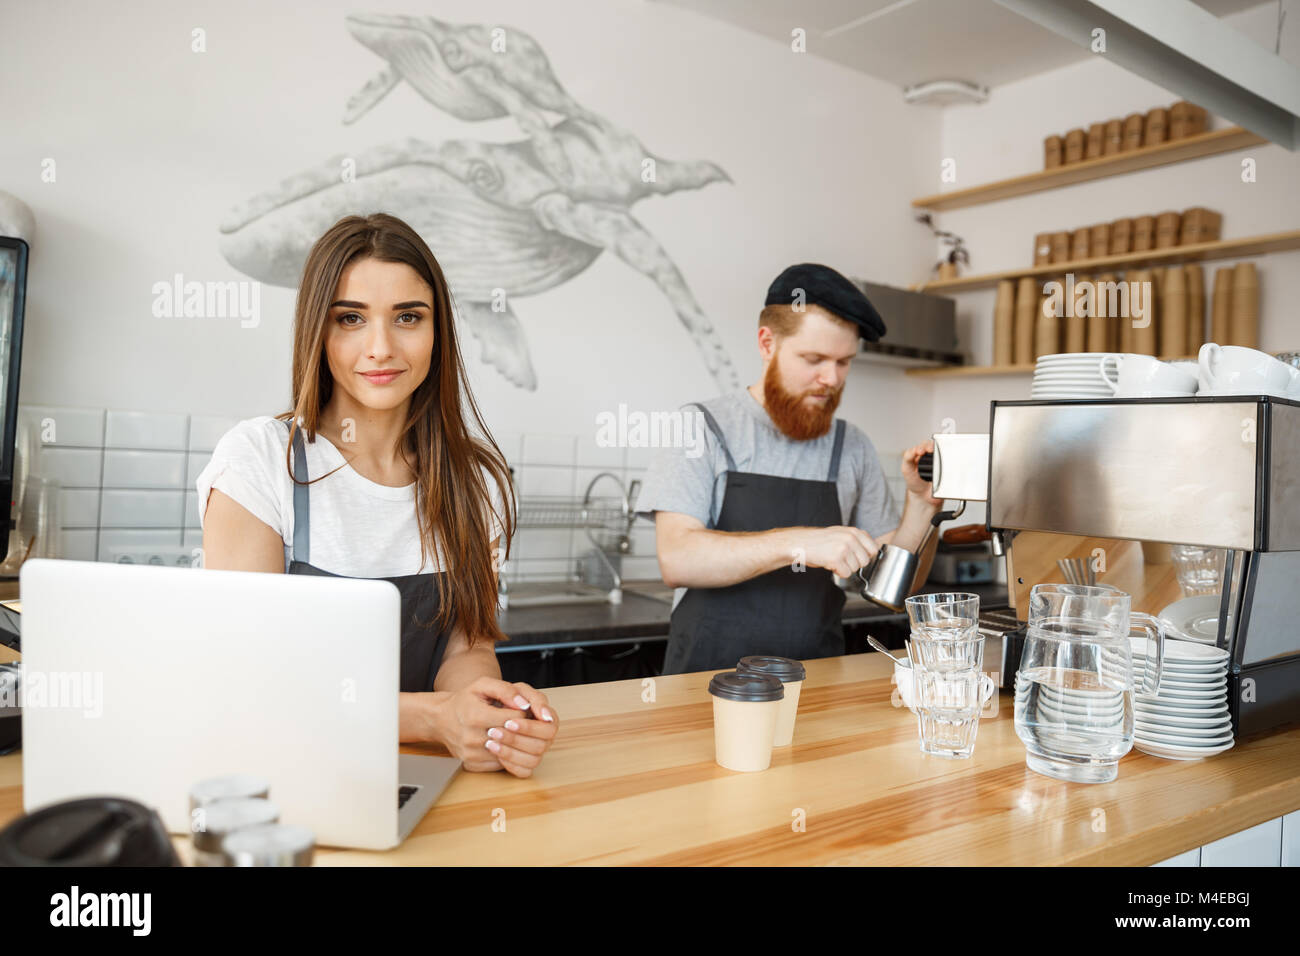 - Concept d'affaires Café jeune homme barbu positive et belle dame attractive couple barista du plaisir Photo Stock